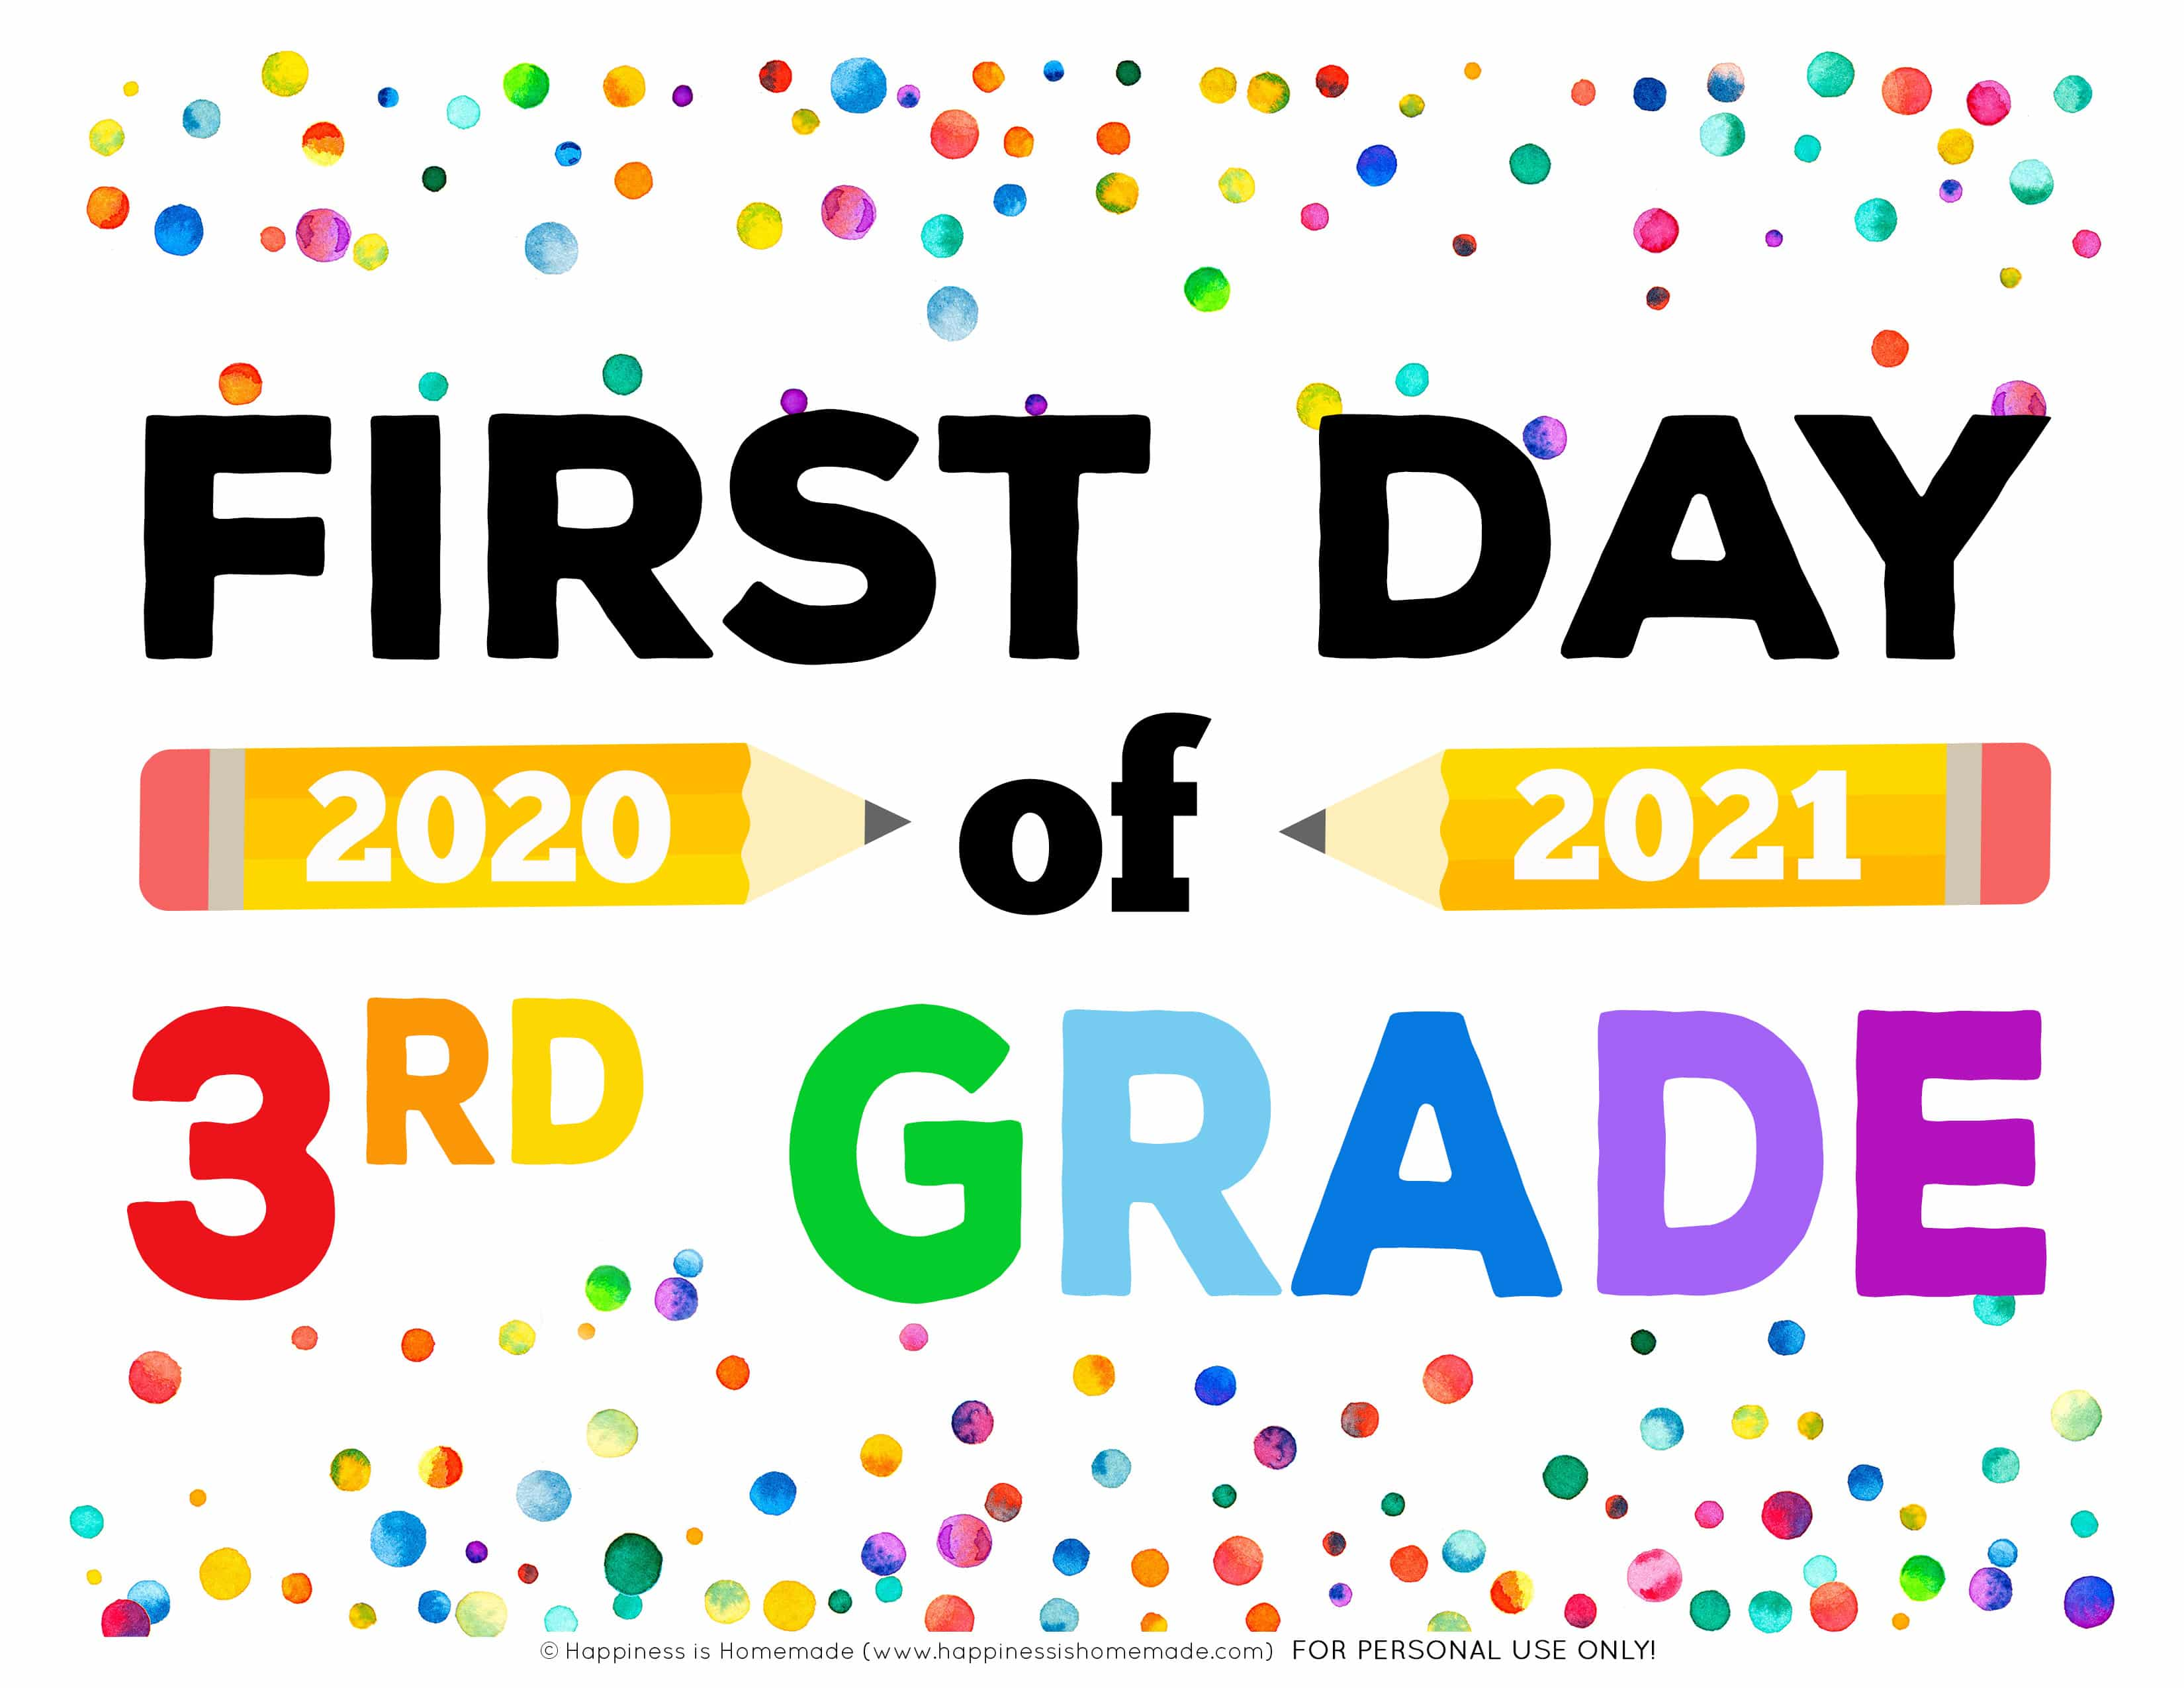 Printable 2020 First Day of School Signs - First Day of 3rd Grade